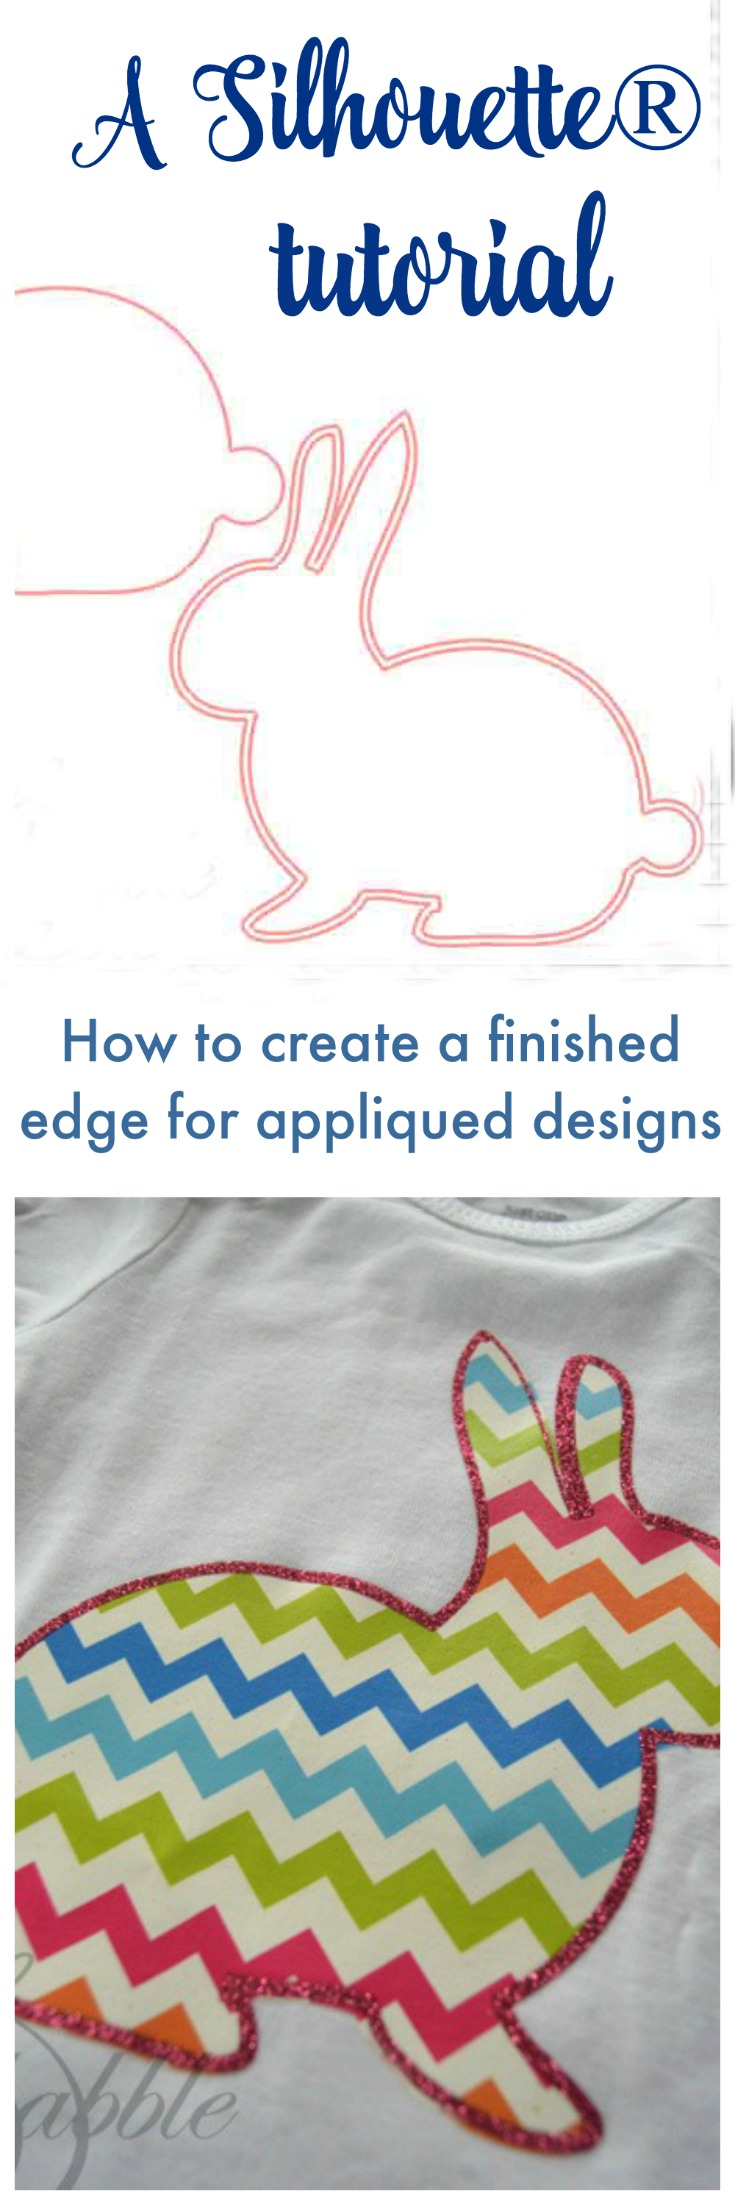 how to make htv outline for appliqued shape in silhouette studio